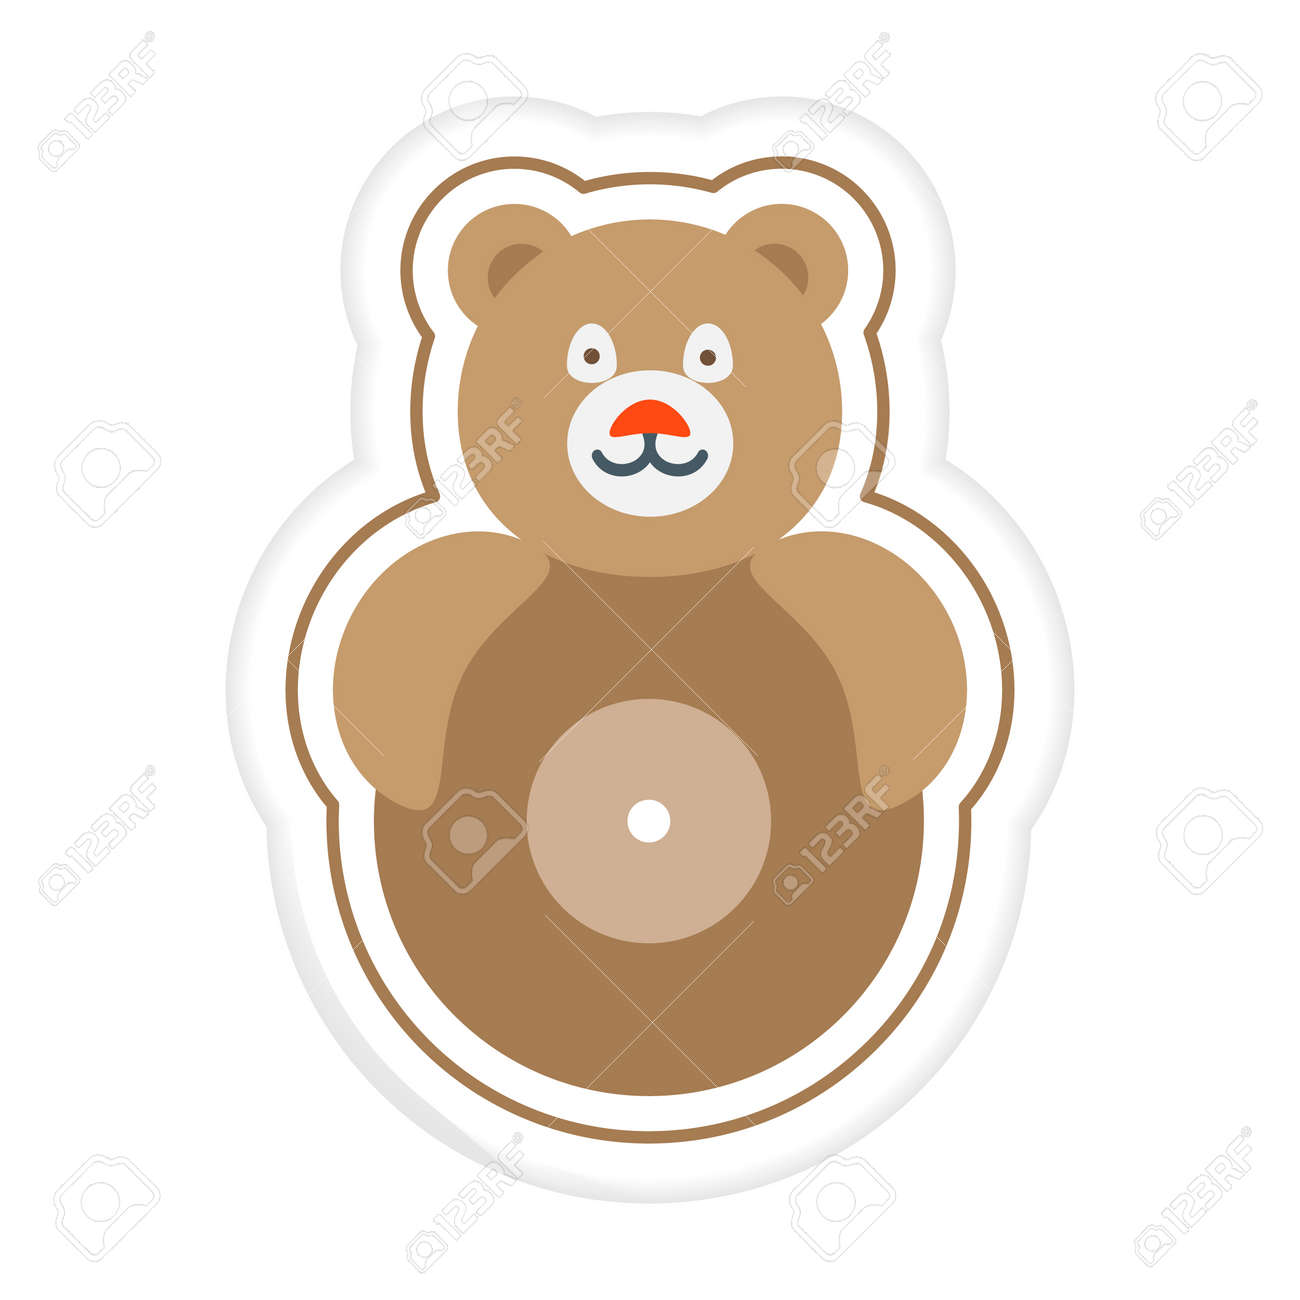 Vector illustration Kid toys Sticker Tumbler Roly-poly toy bear. Primary school, elementary grade, kindergarten. Happy childhood. Activity. Game. Play. Design for print - 170255046